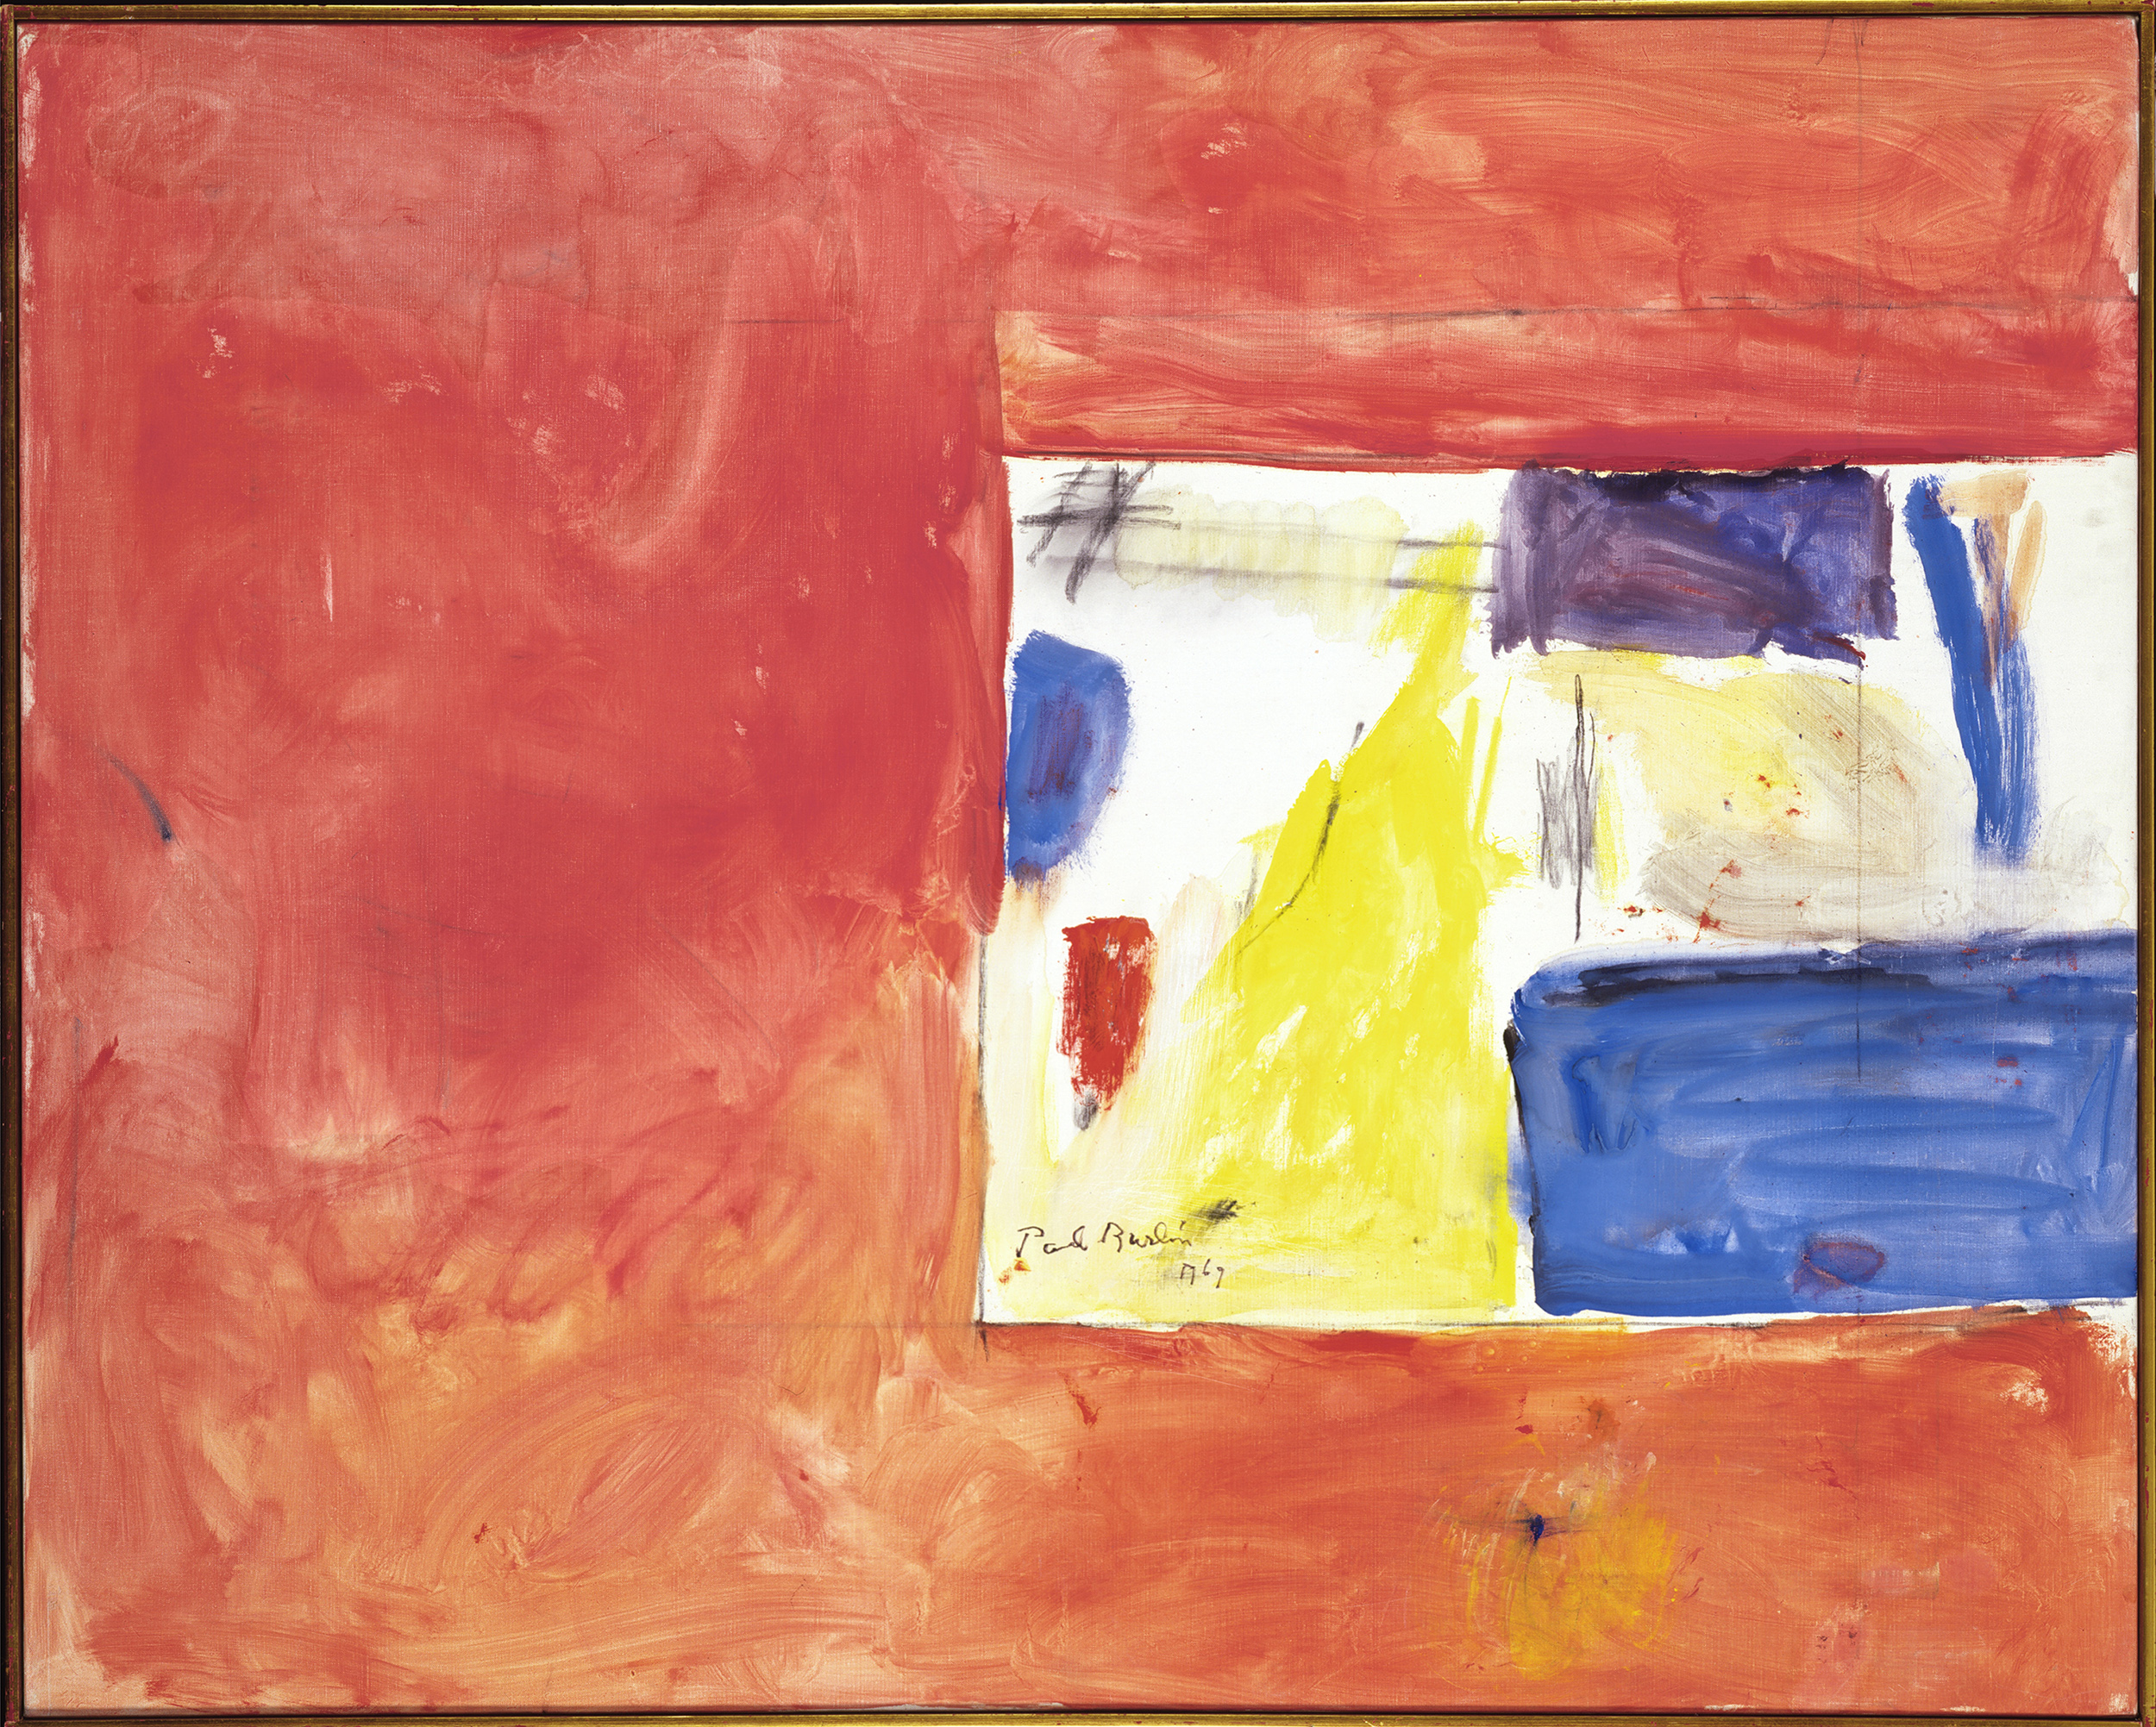 Last of Nine #3  , Oil on canvas, 1969, 45 x 56 inches